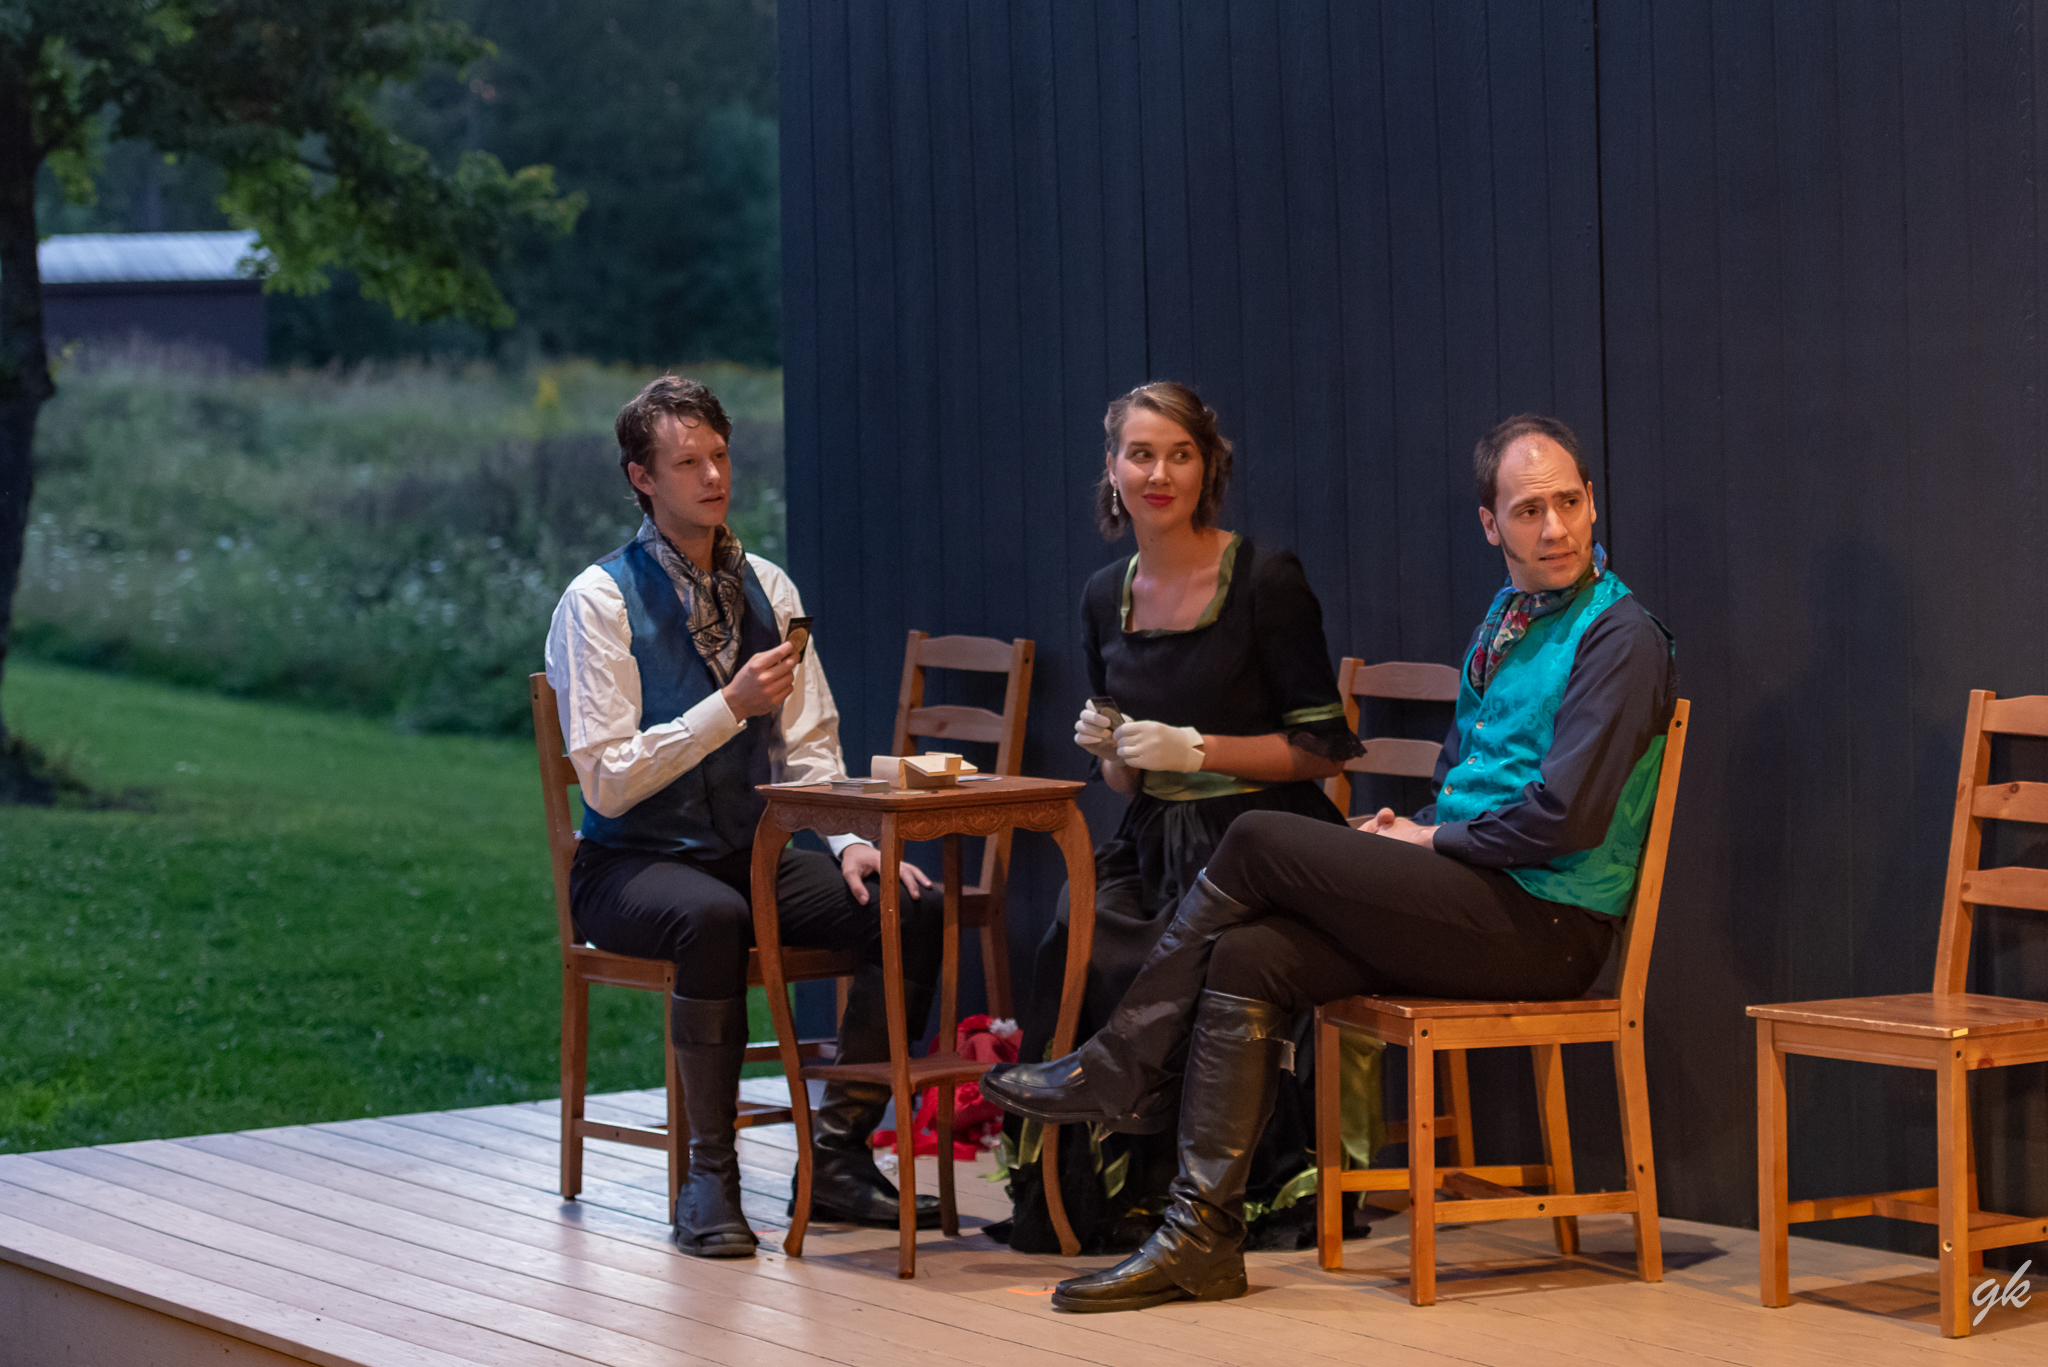 """Mr. Darcy (JJ Gatesman), Miss Bingley (Genevieve Breitbach) and Mr. Bingley (Matthew Collie) play a game while listening in on a conversation in a scene from Summerstage's """"Pride and Prejudice."""""""